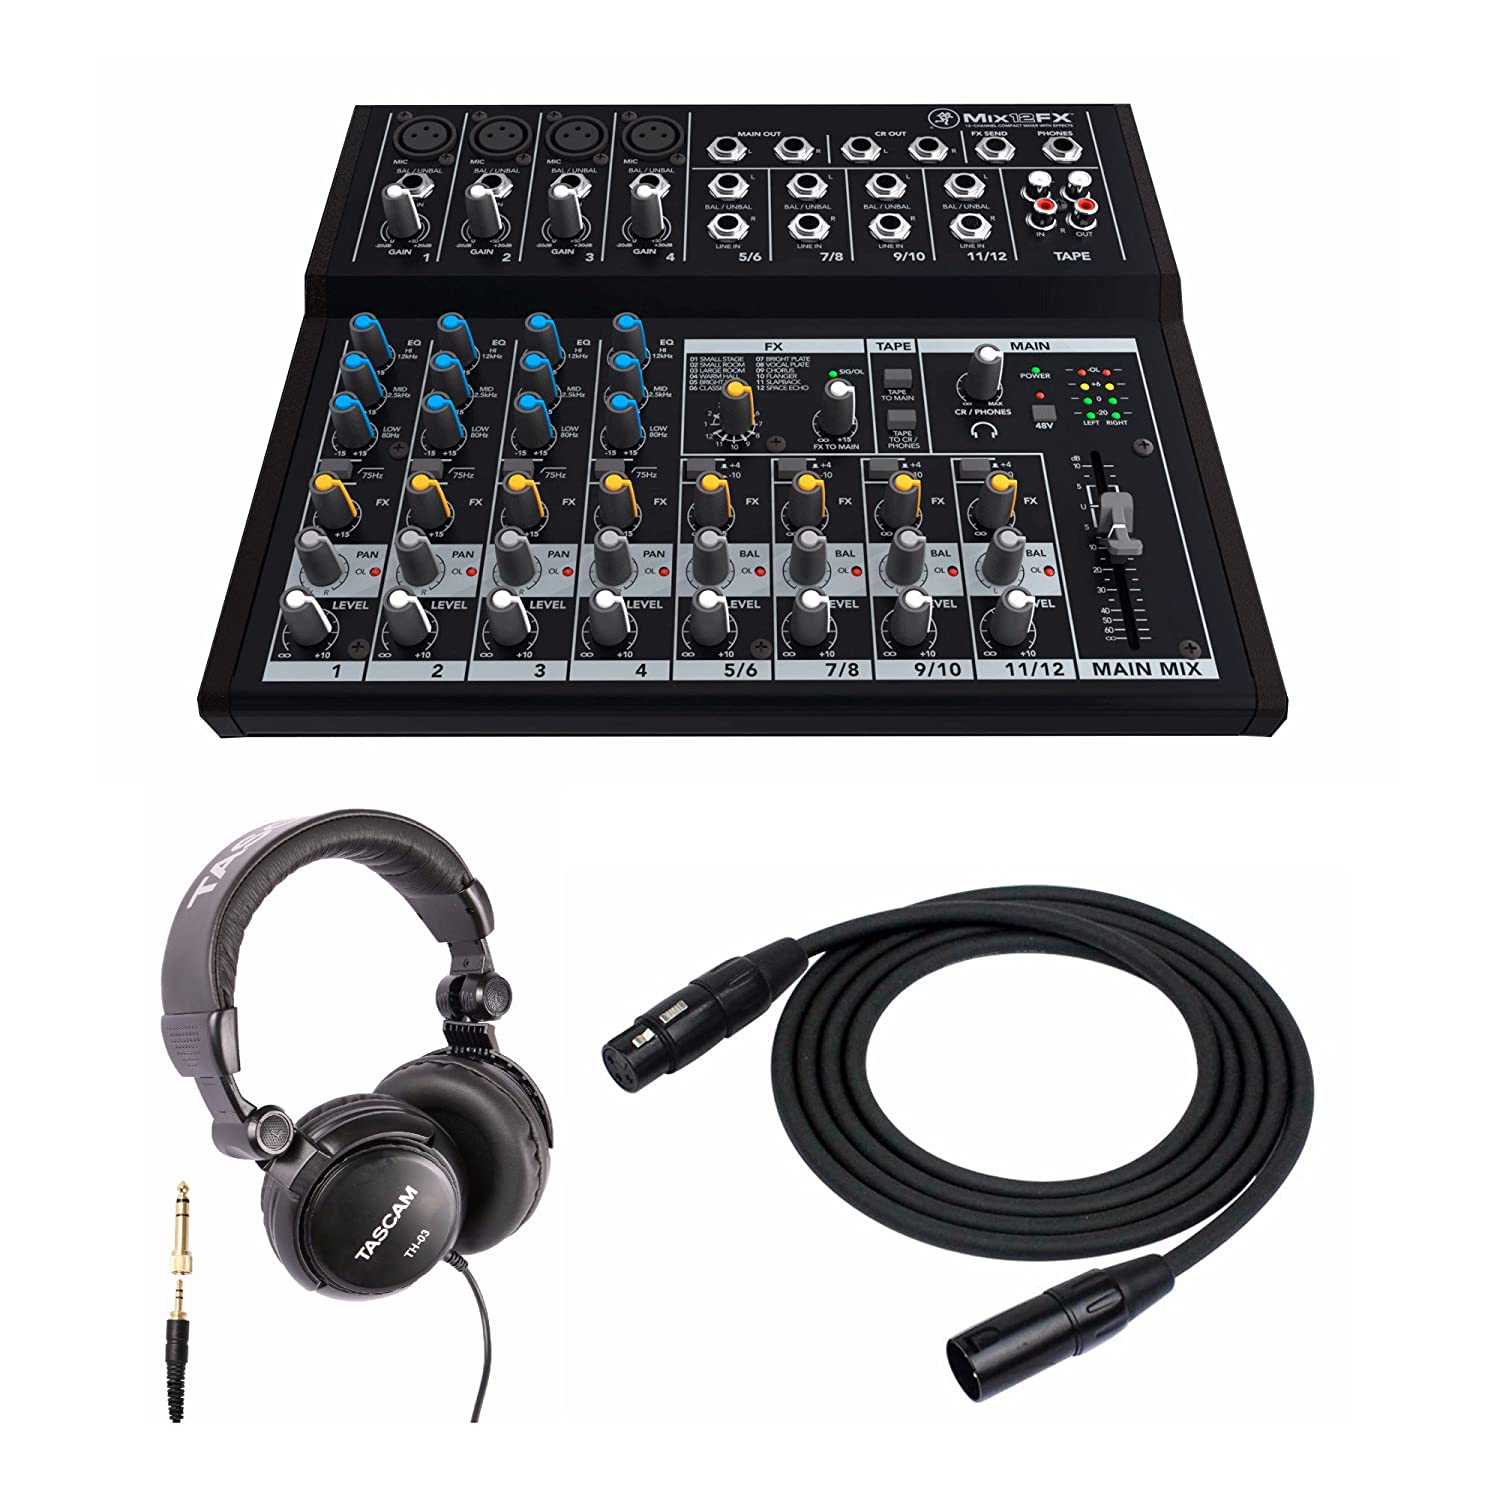 Mackie Mix12FX 12-channel Compact Effects Mixer Kit. Includes Stereo Headphones and XLR Cable